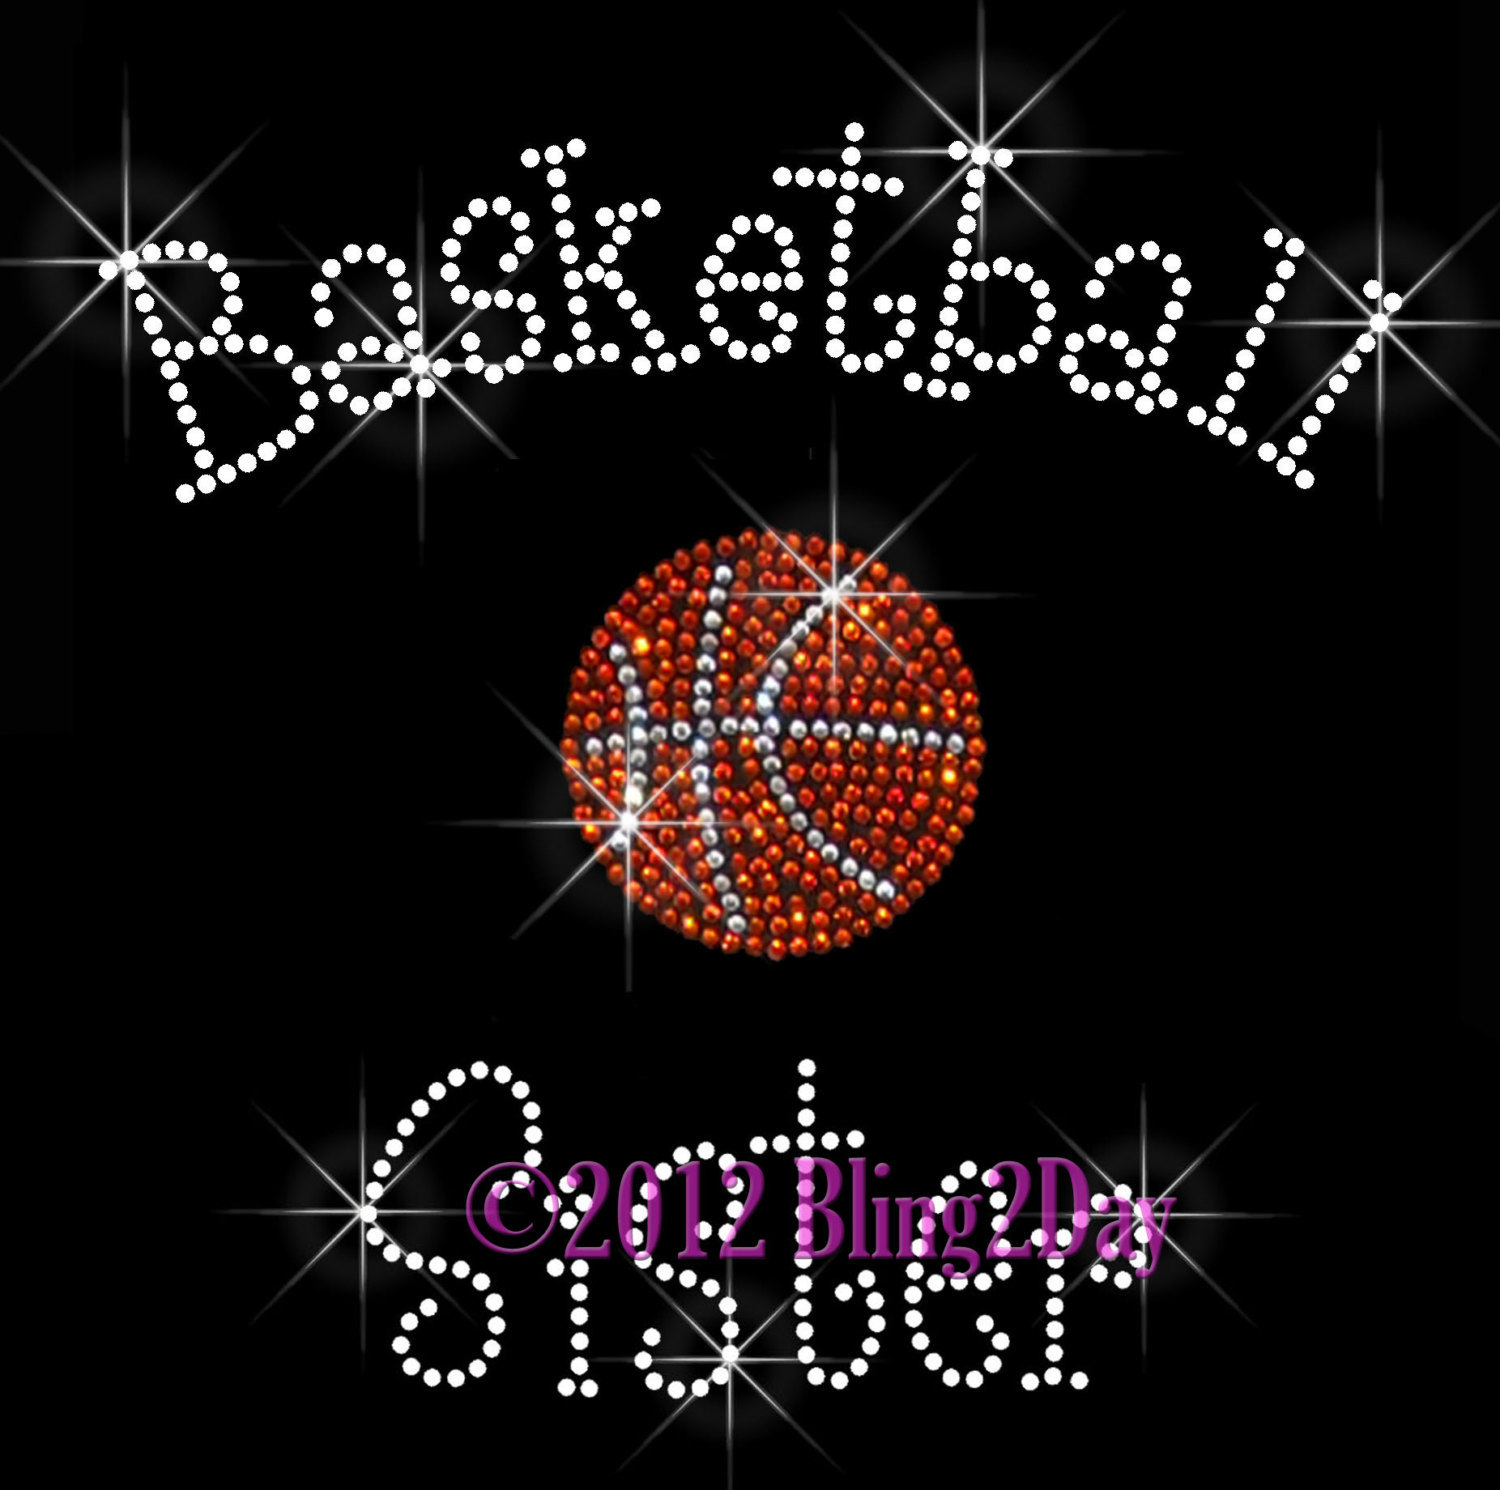 Primary image for Basketball Sister - C - Iron on Rhinestone Transfer Bling Hot Fix Sports School